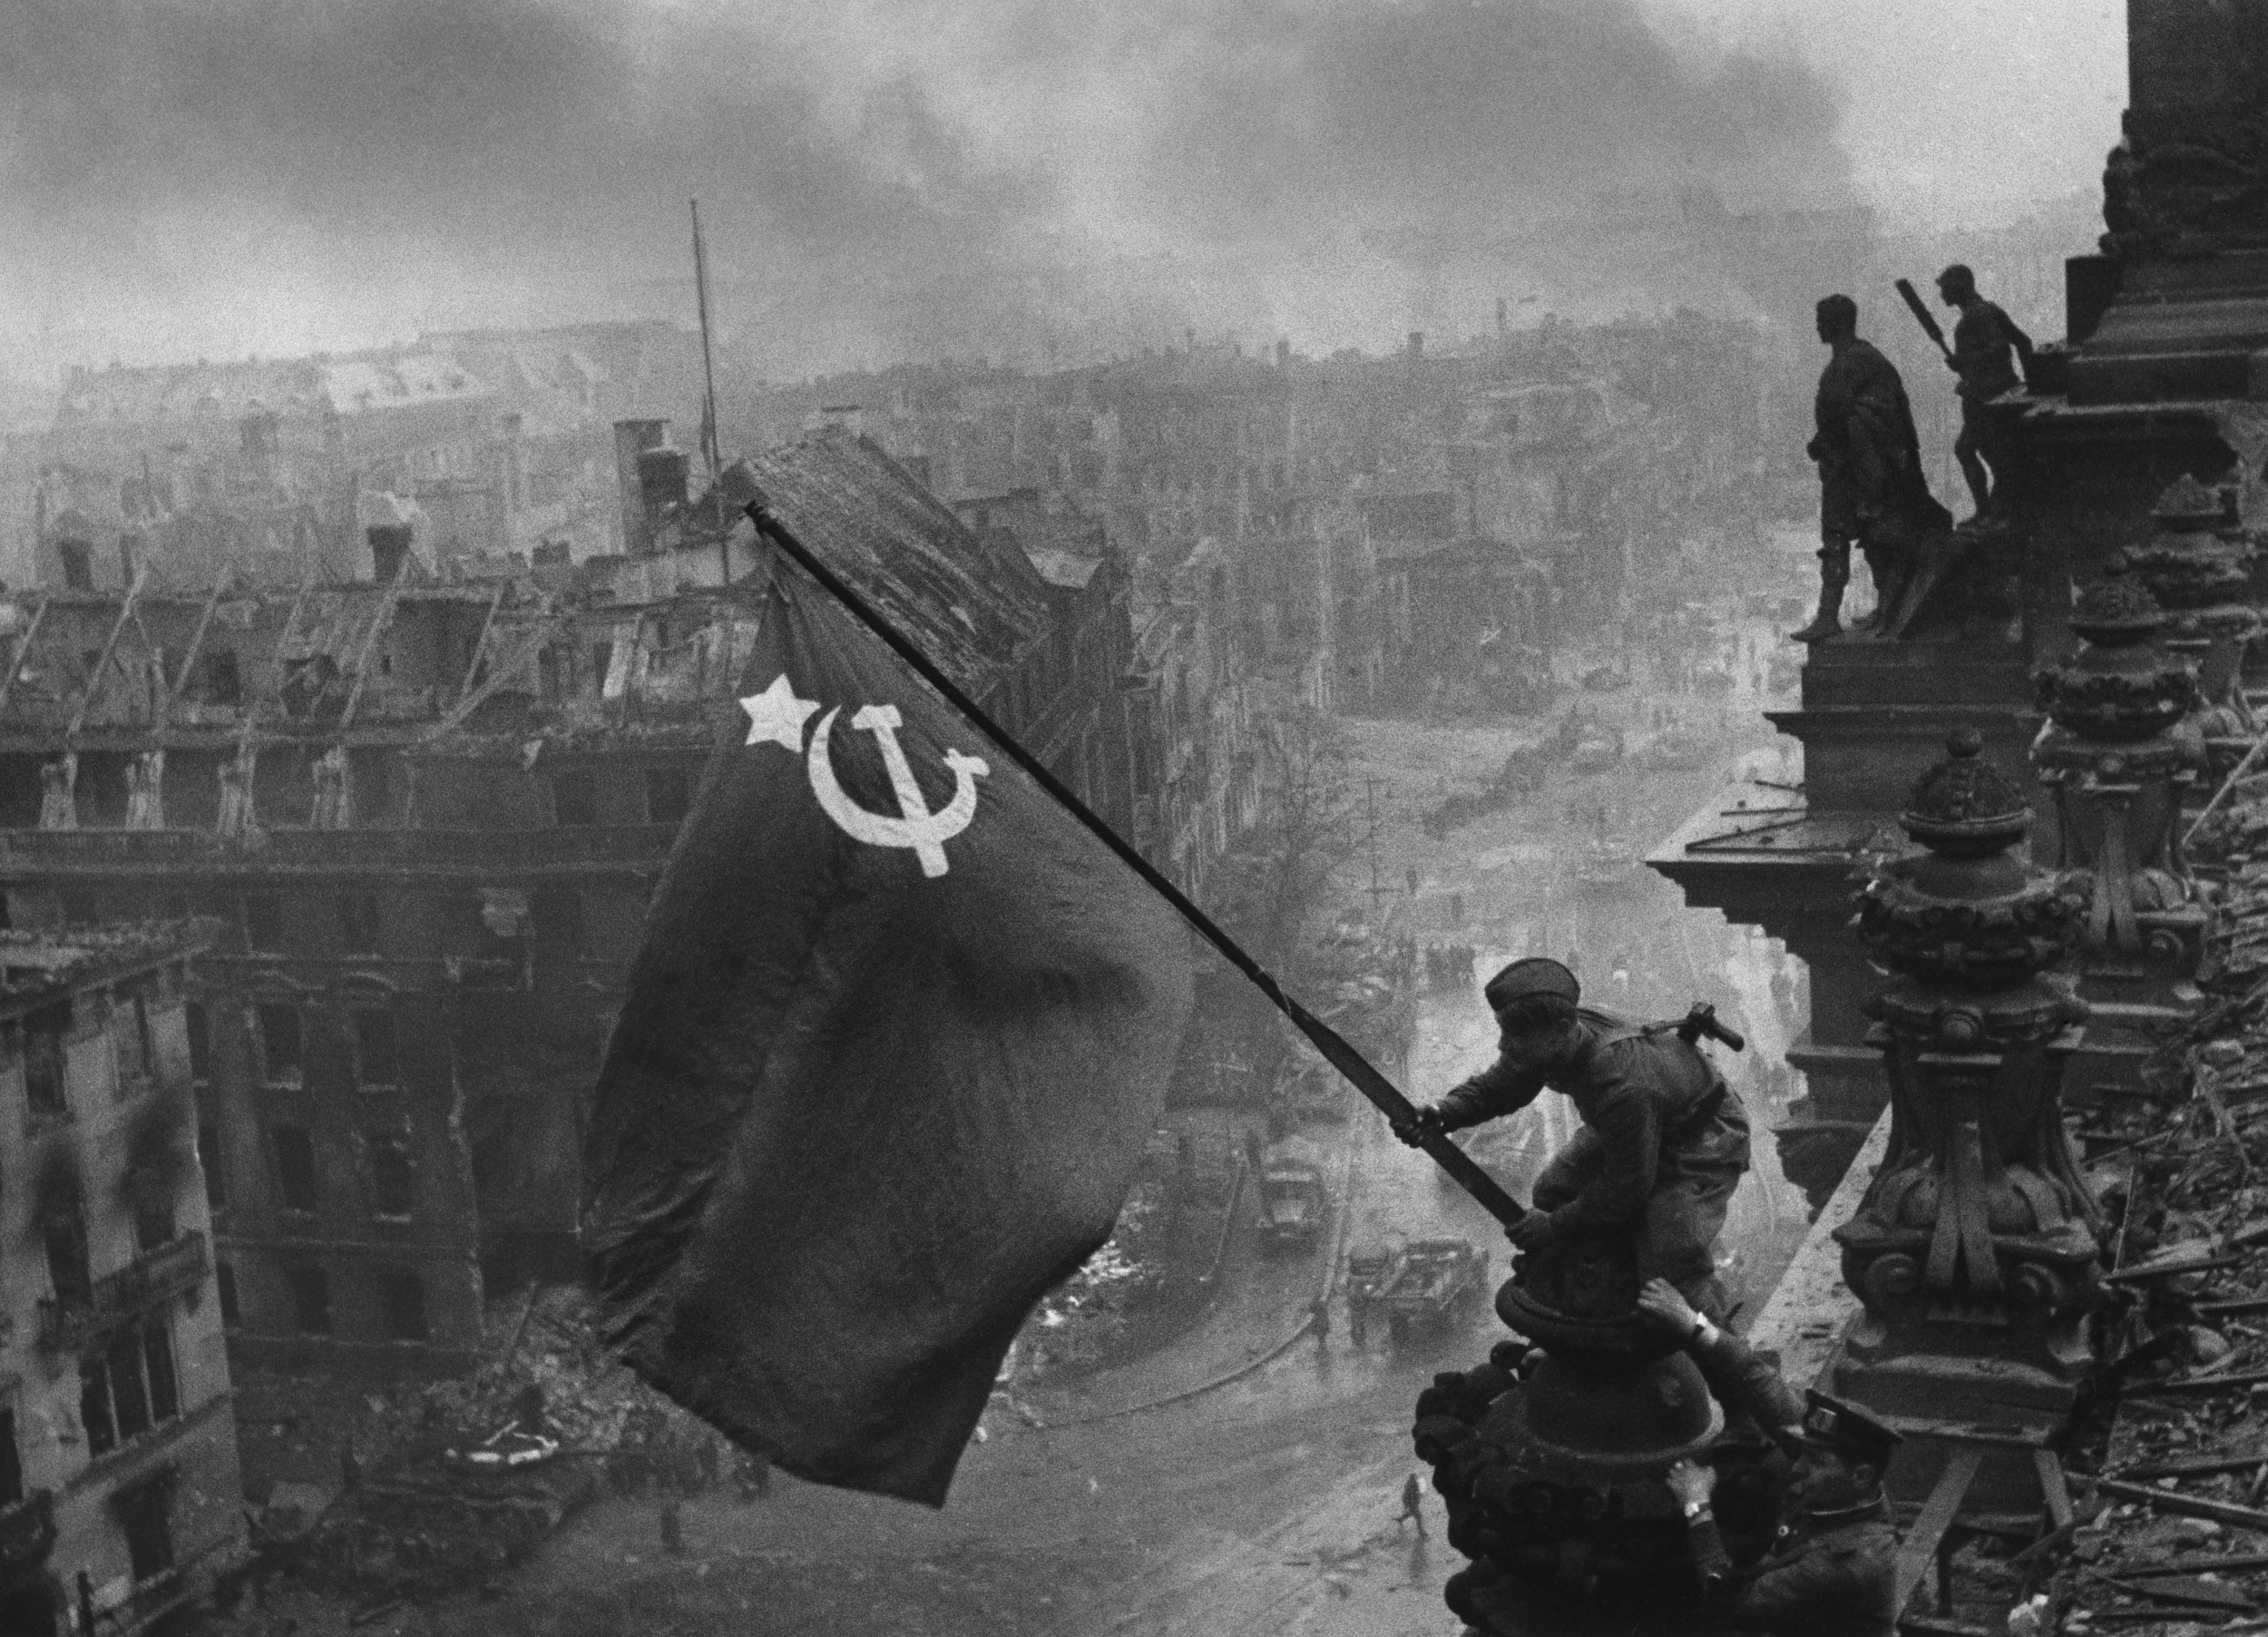 Soviet soldiers raise the hammer and sickle over the Reichstag during the Battle of Berlin on May 2nd, 1945. Photo credit:  creative commons.